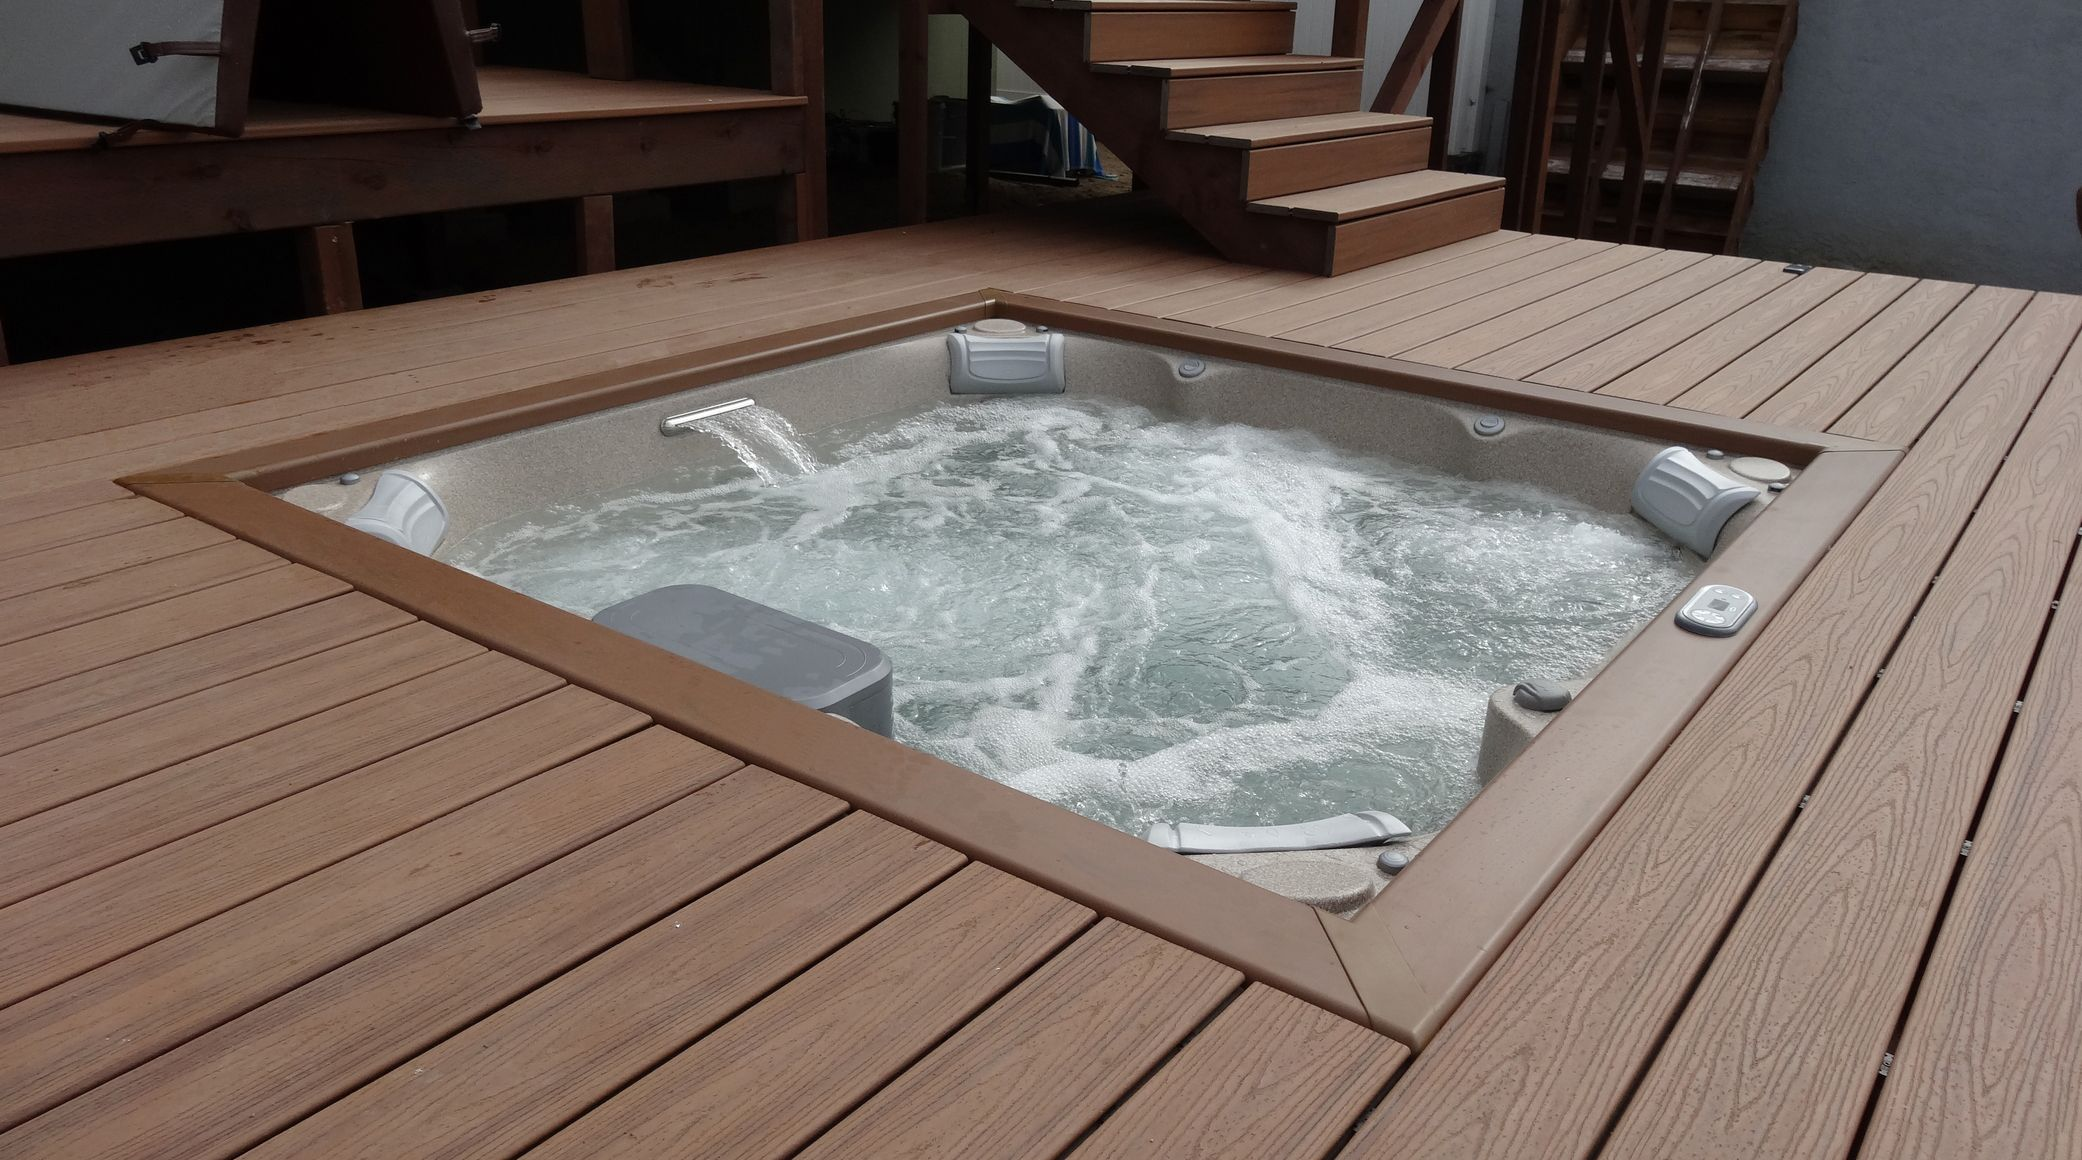 spa jacuzzi j lx encastr dans terrasse en bois. Black Bedroom Furniture Sets. Home Design Ideas